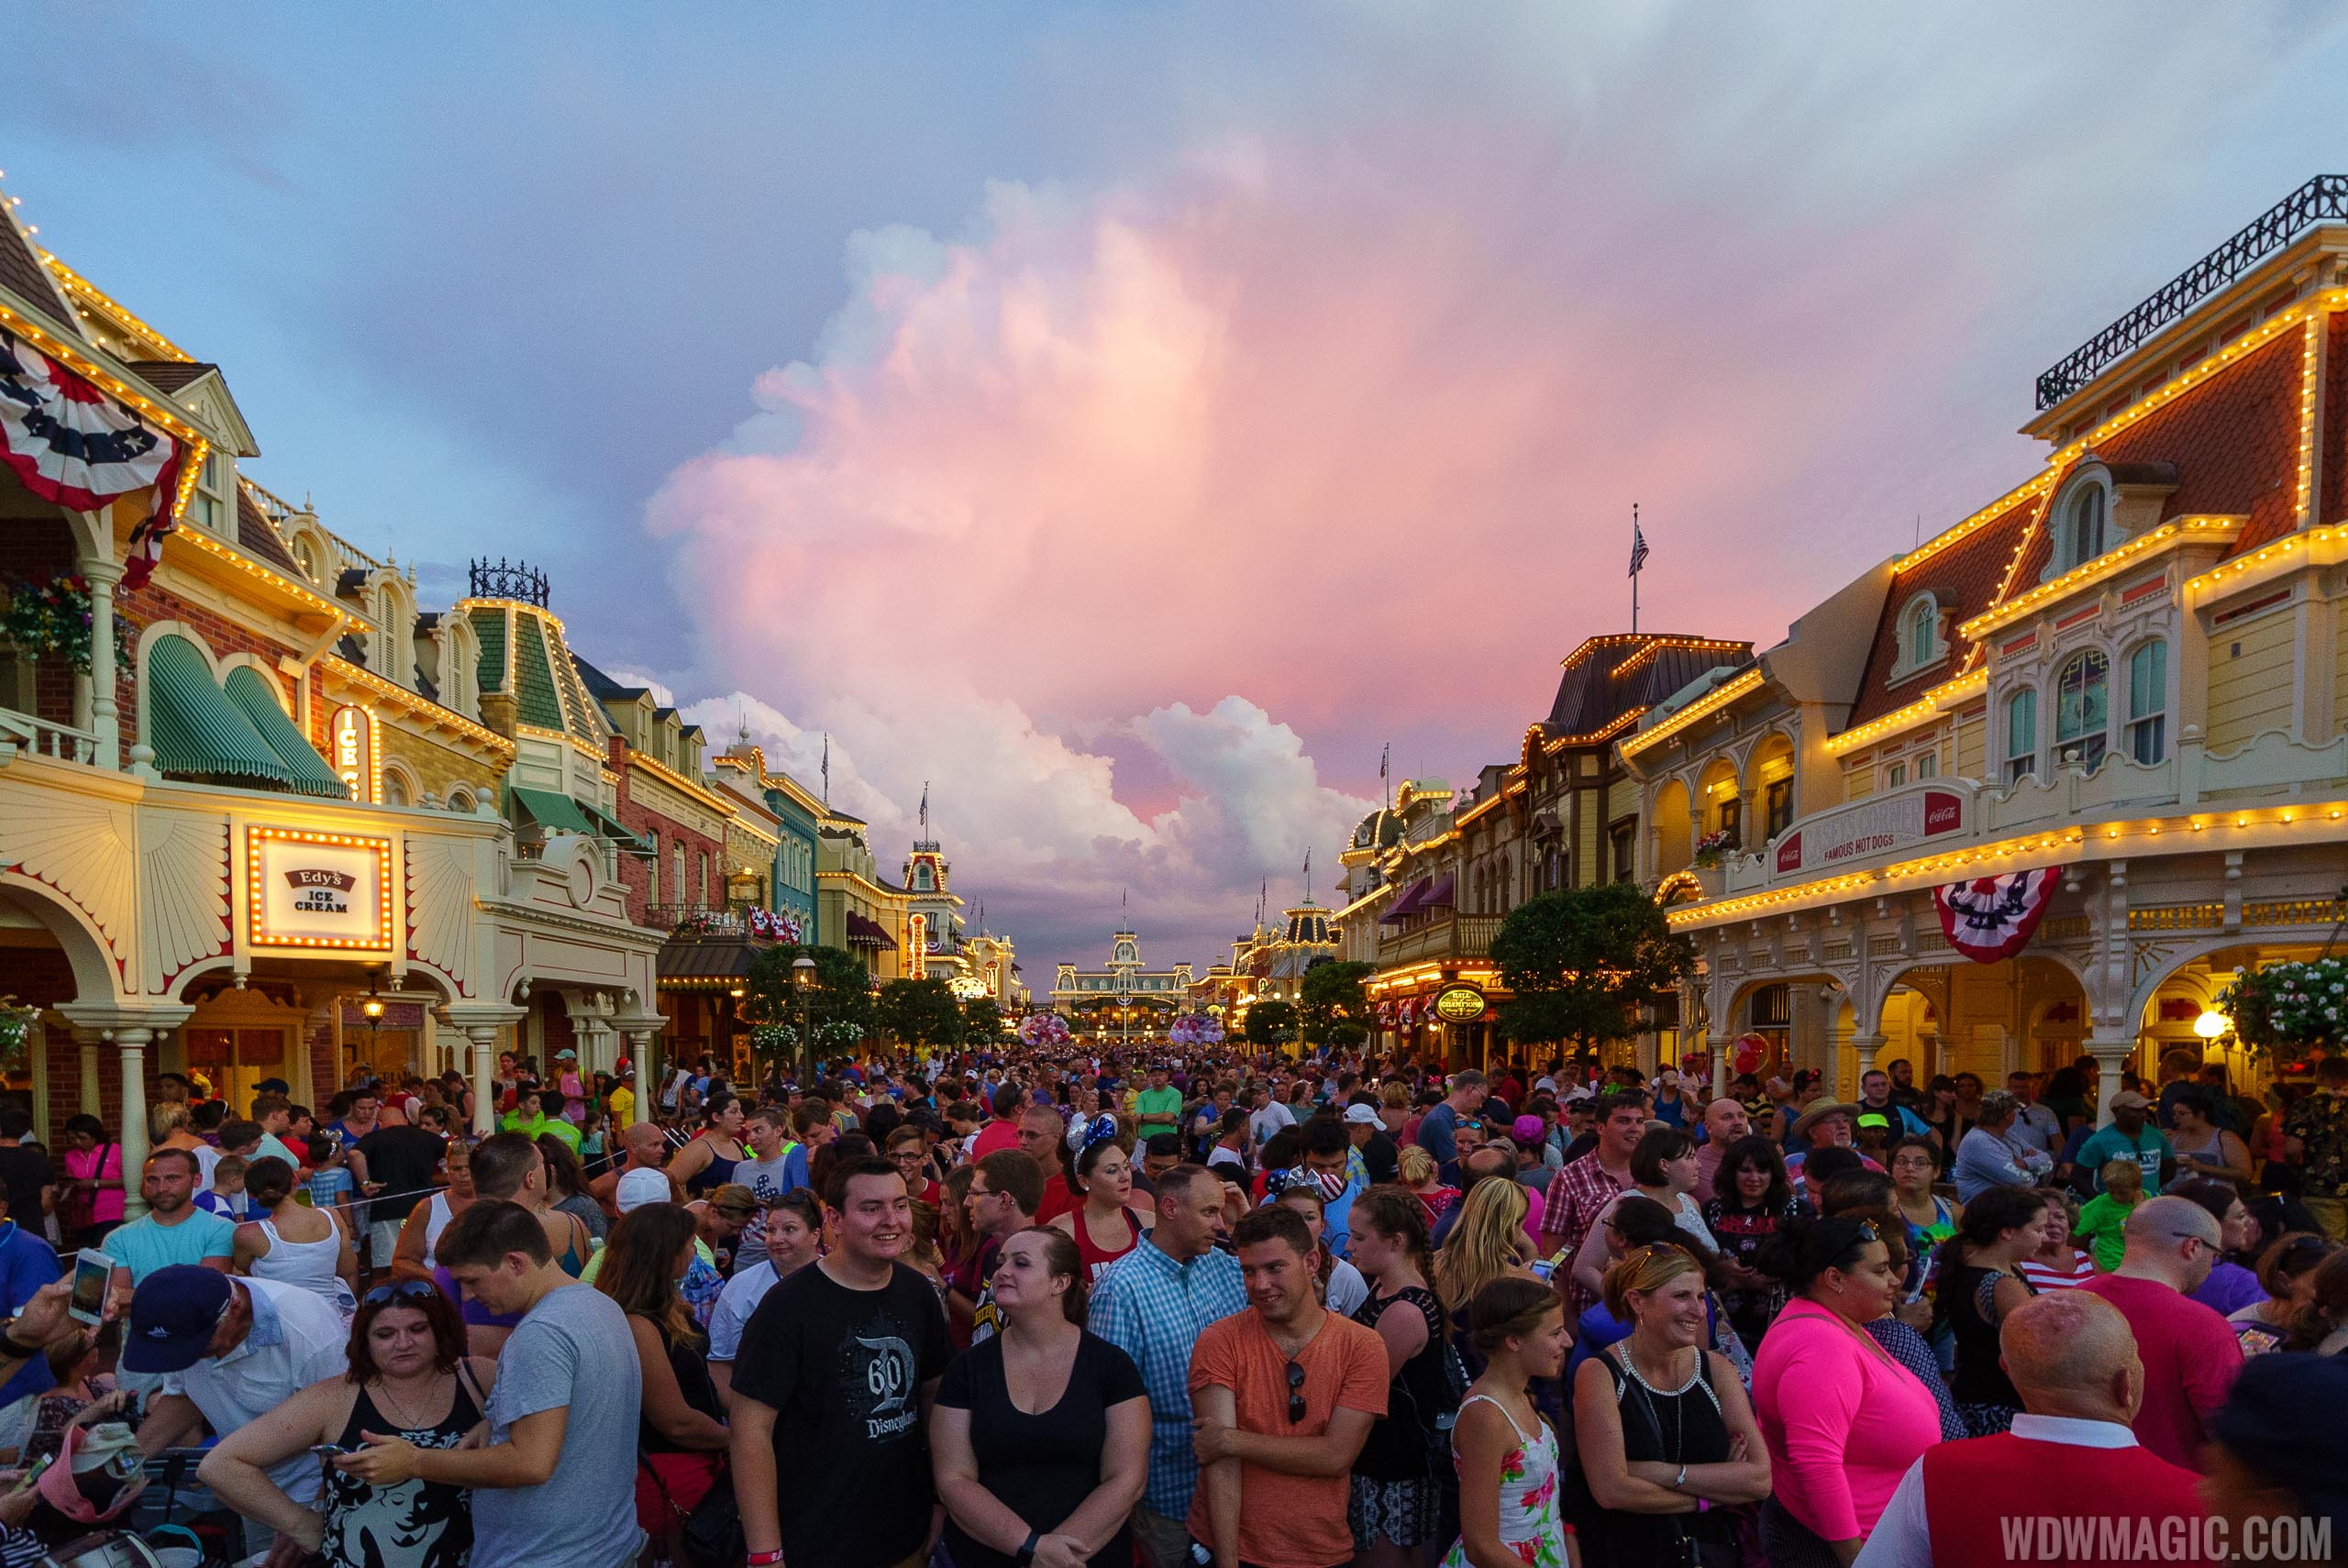 Main Street U.S.A. on July 4